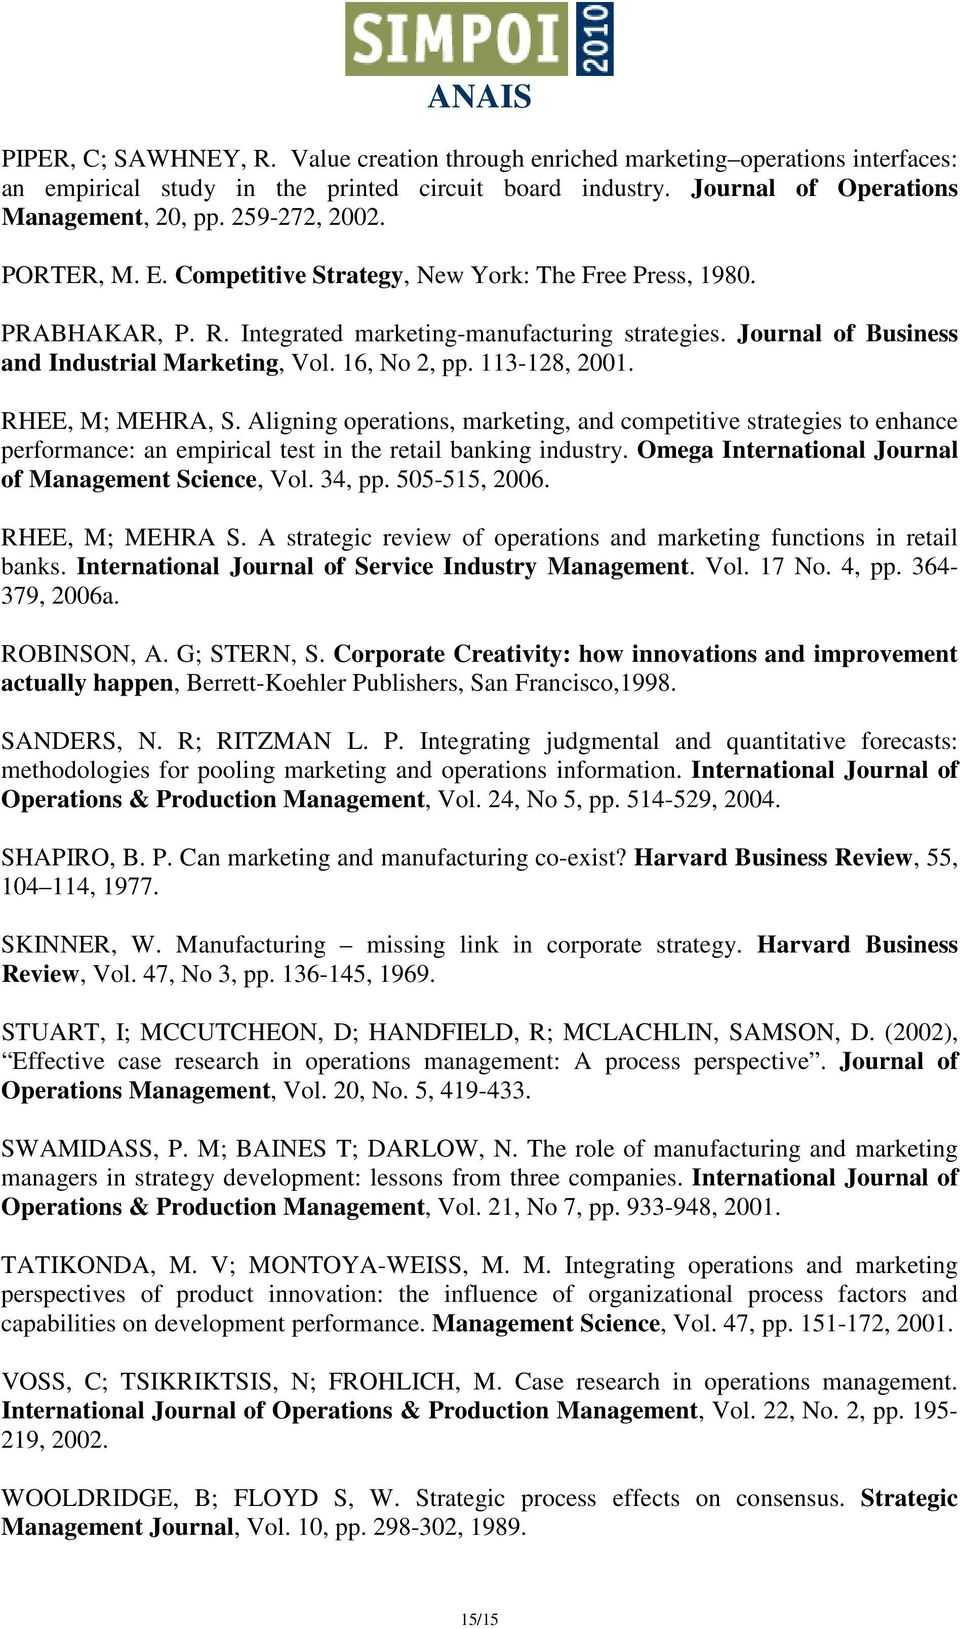 16, No 2, pp. 113-128, 2001. RHEE, M; MEHRA, S. Aligning operations, marketing, and competitive strategies to enhance performance: an empirical test in the retail banking industry.